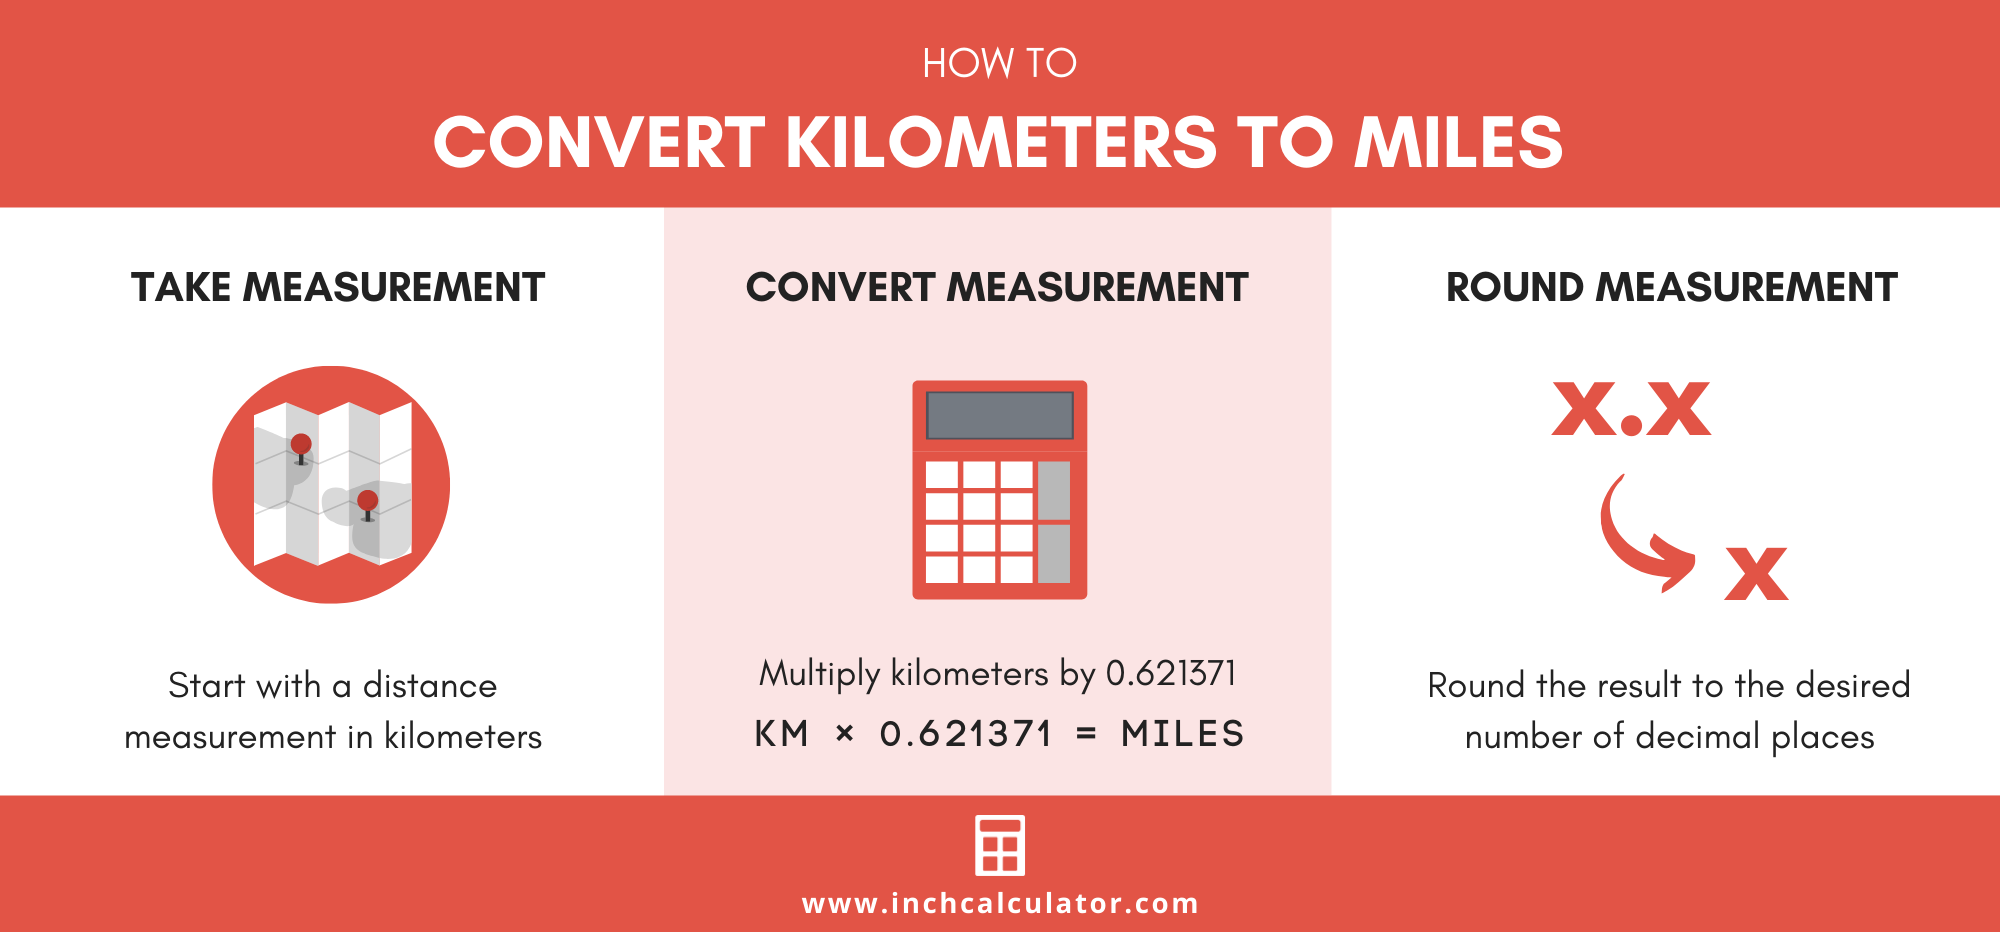 infographic showing how to convert kilometers to miles